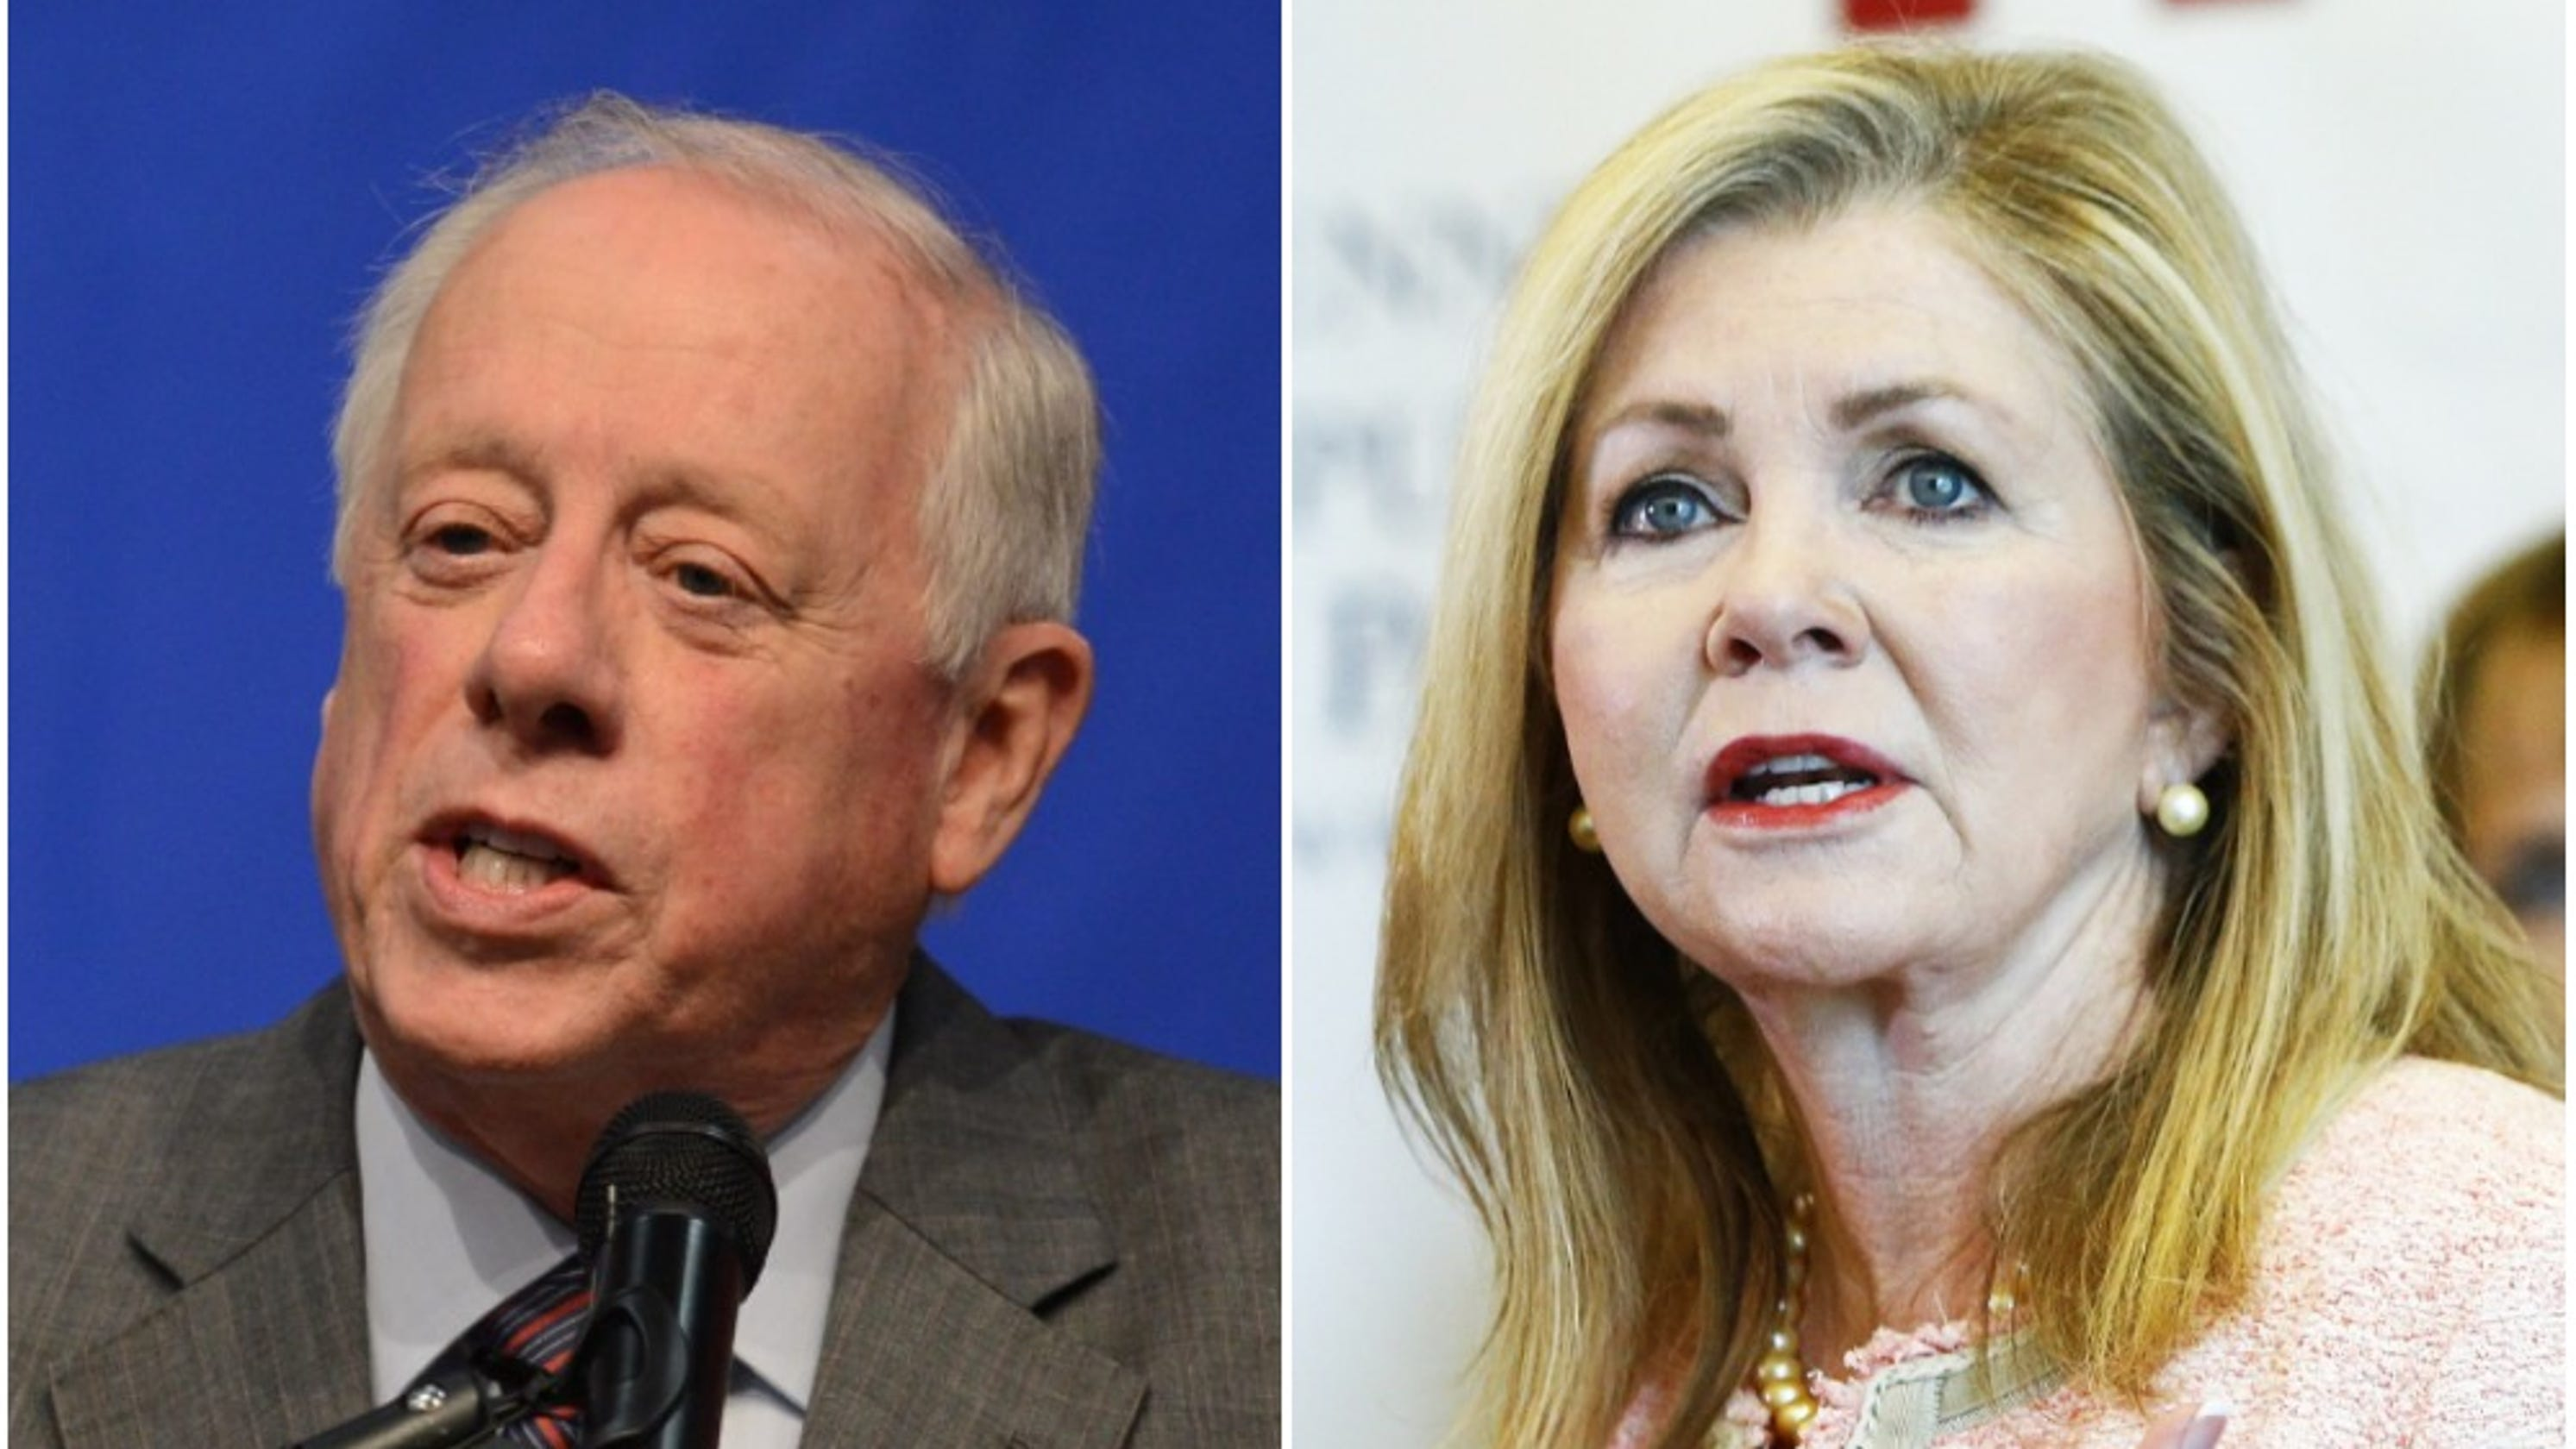 Tennessee elections: Marsha Blackburn, Phil Bredesen outline views